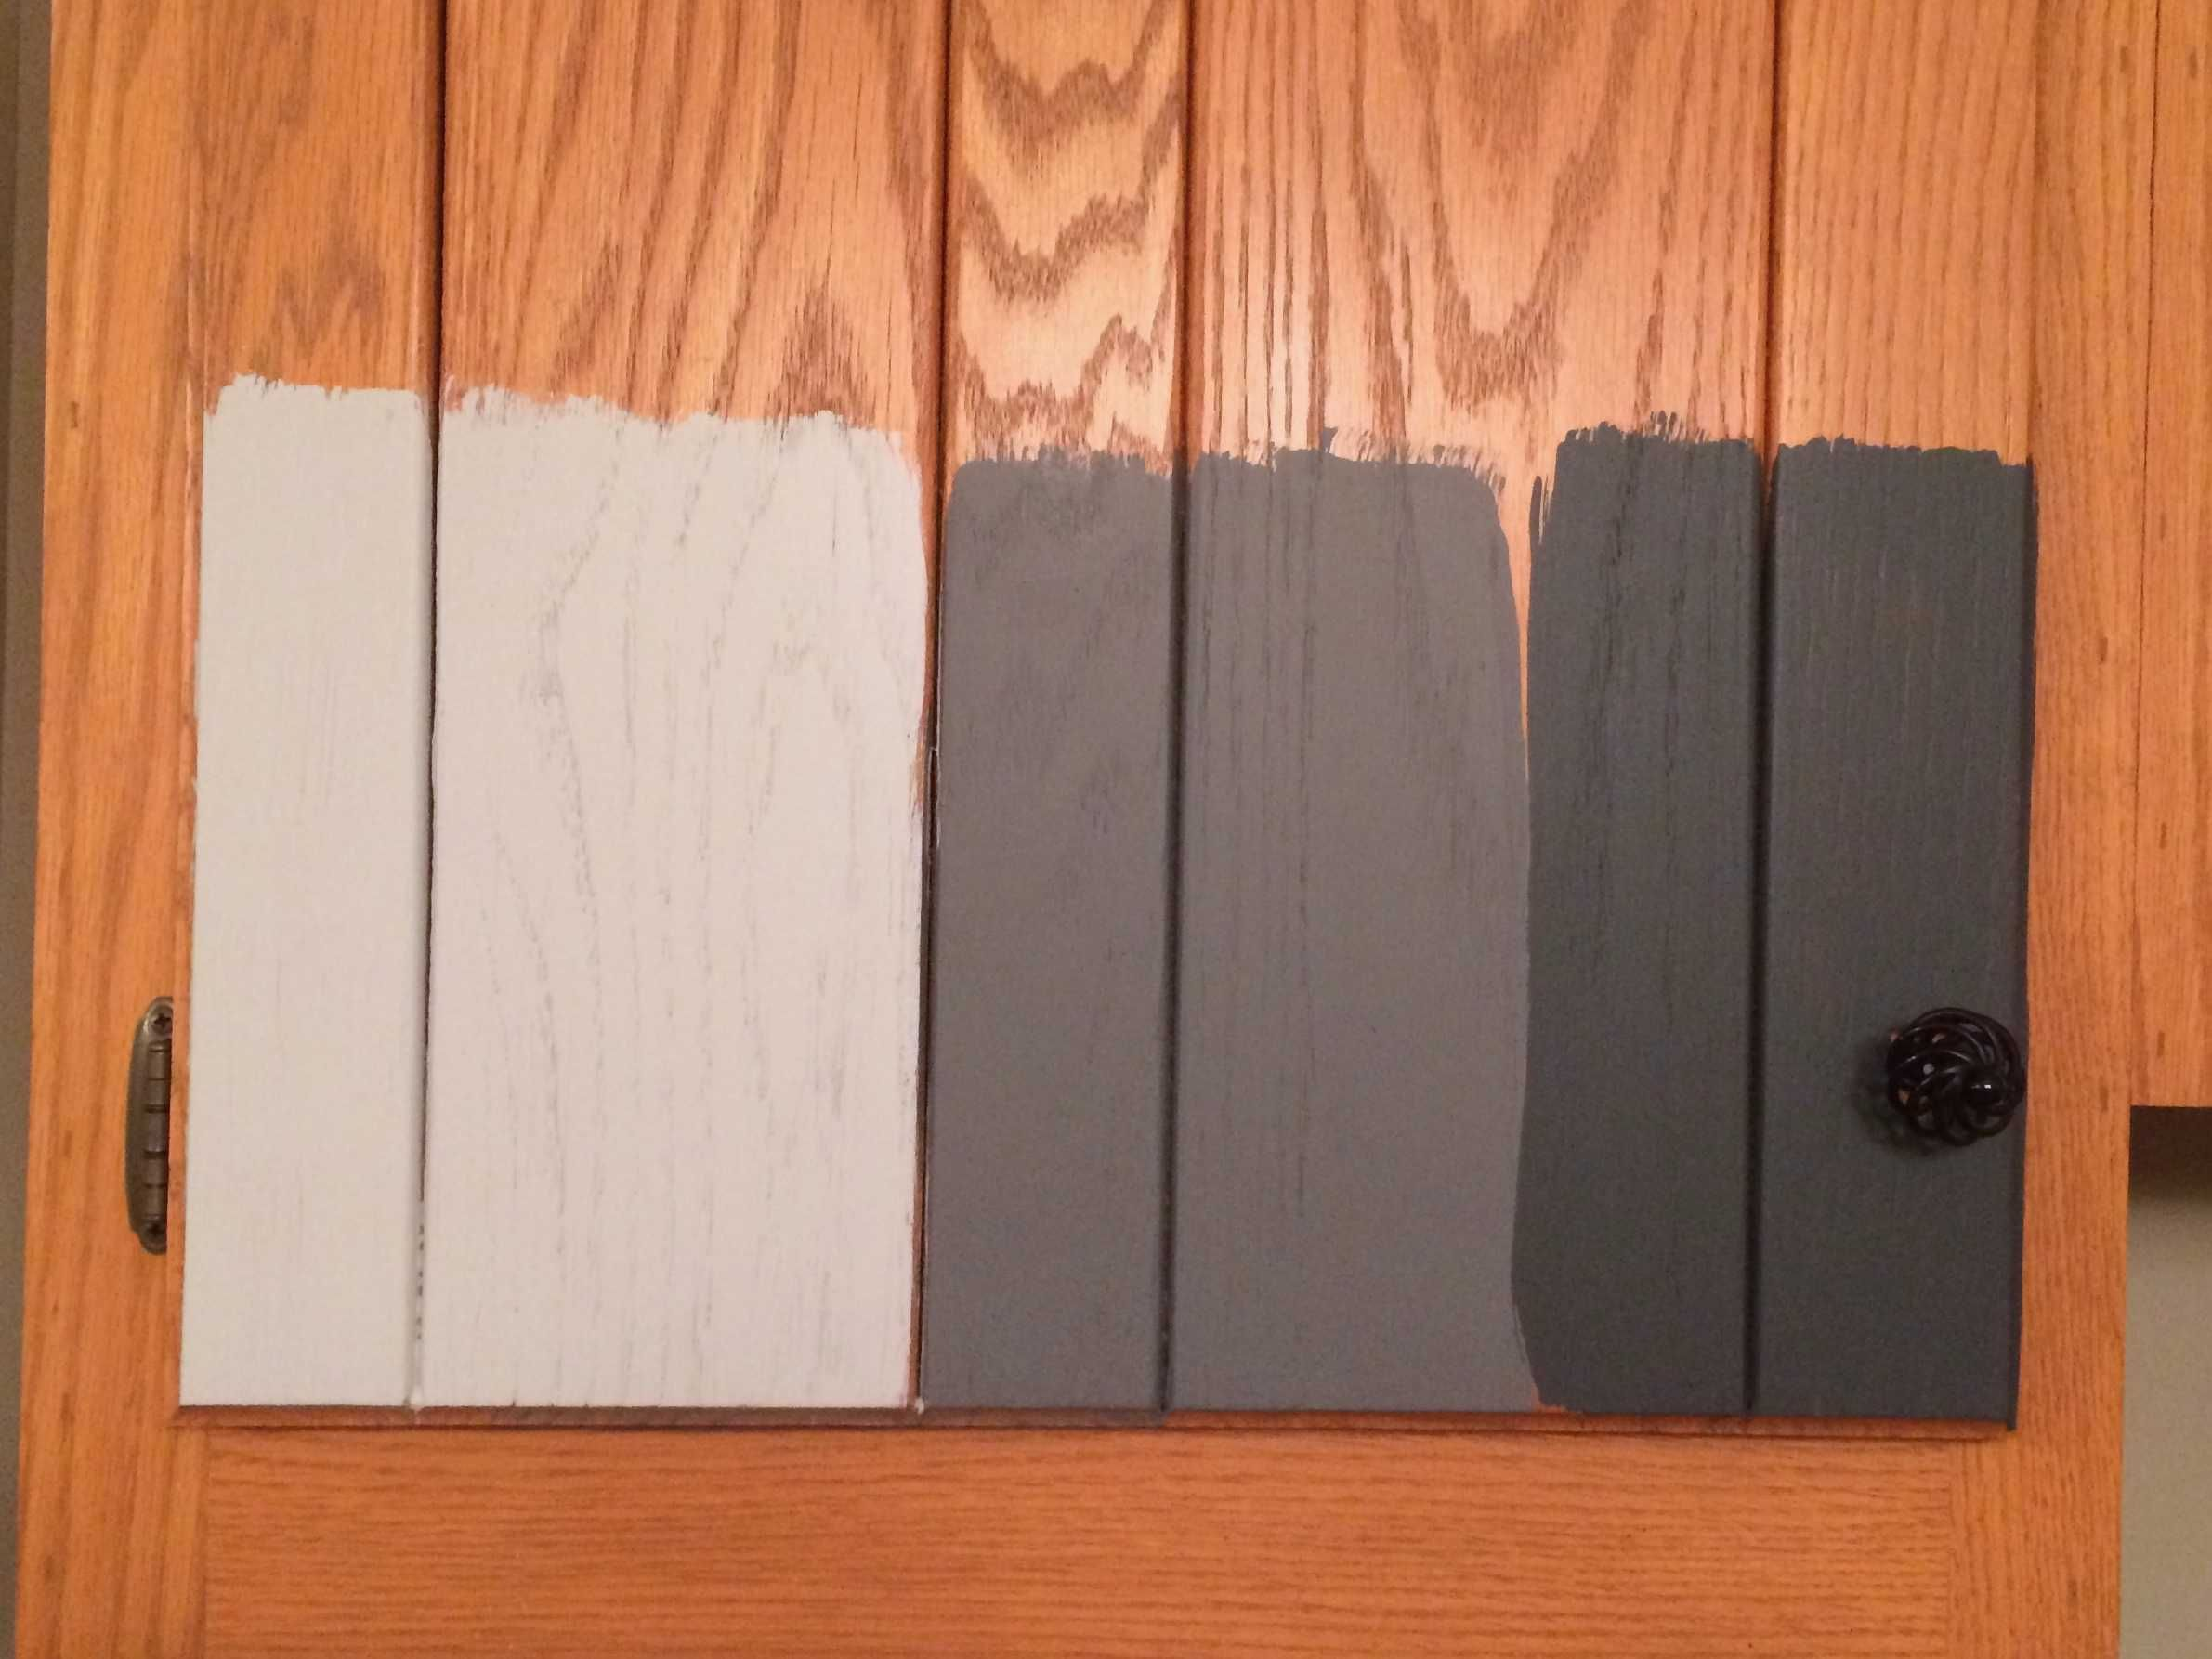 how to remodel kitchen How to Paint Kitchen Cabinets without sanding or priming